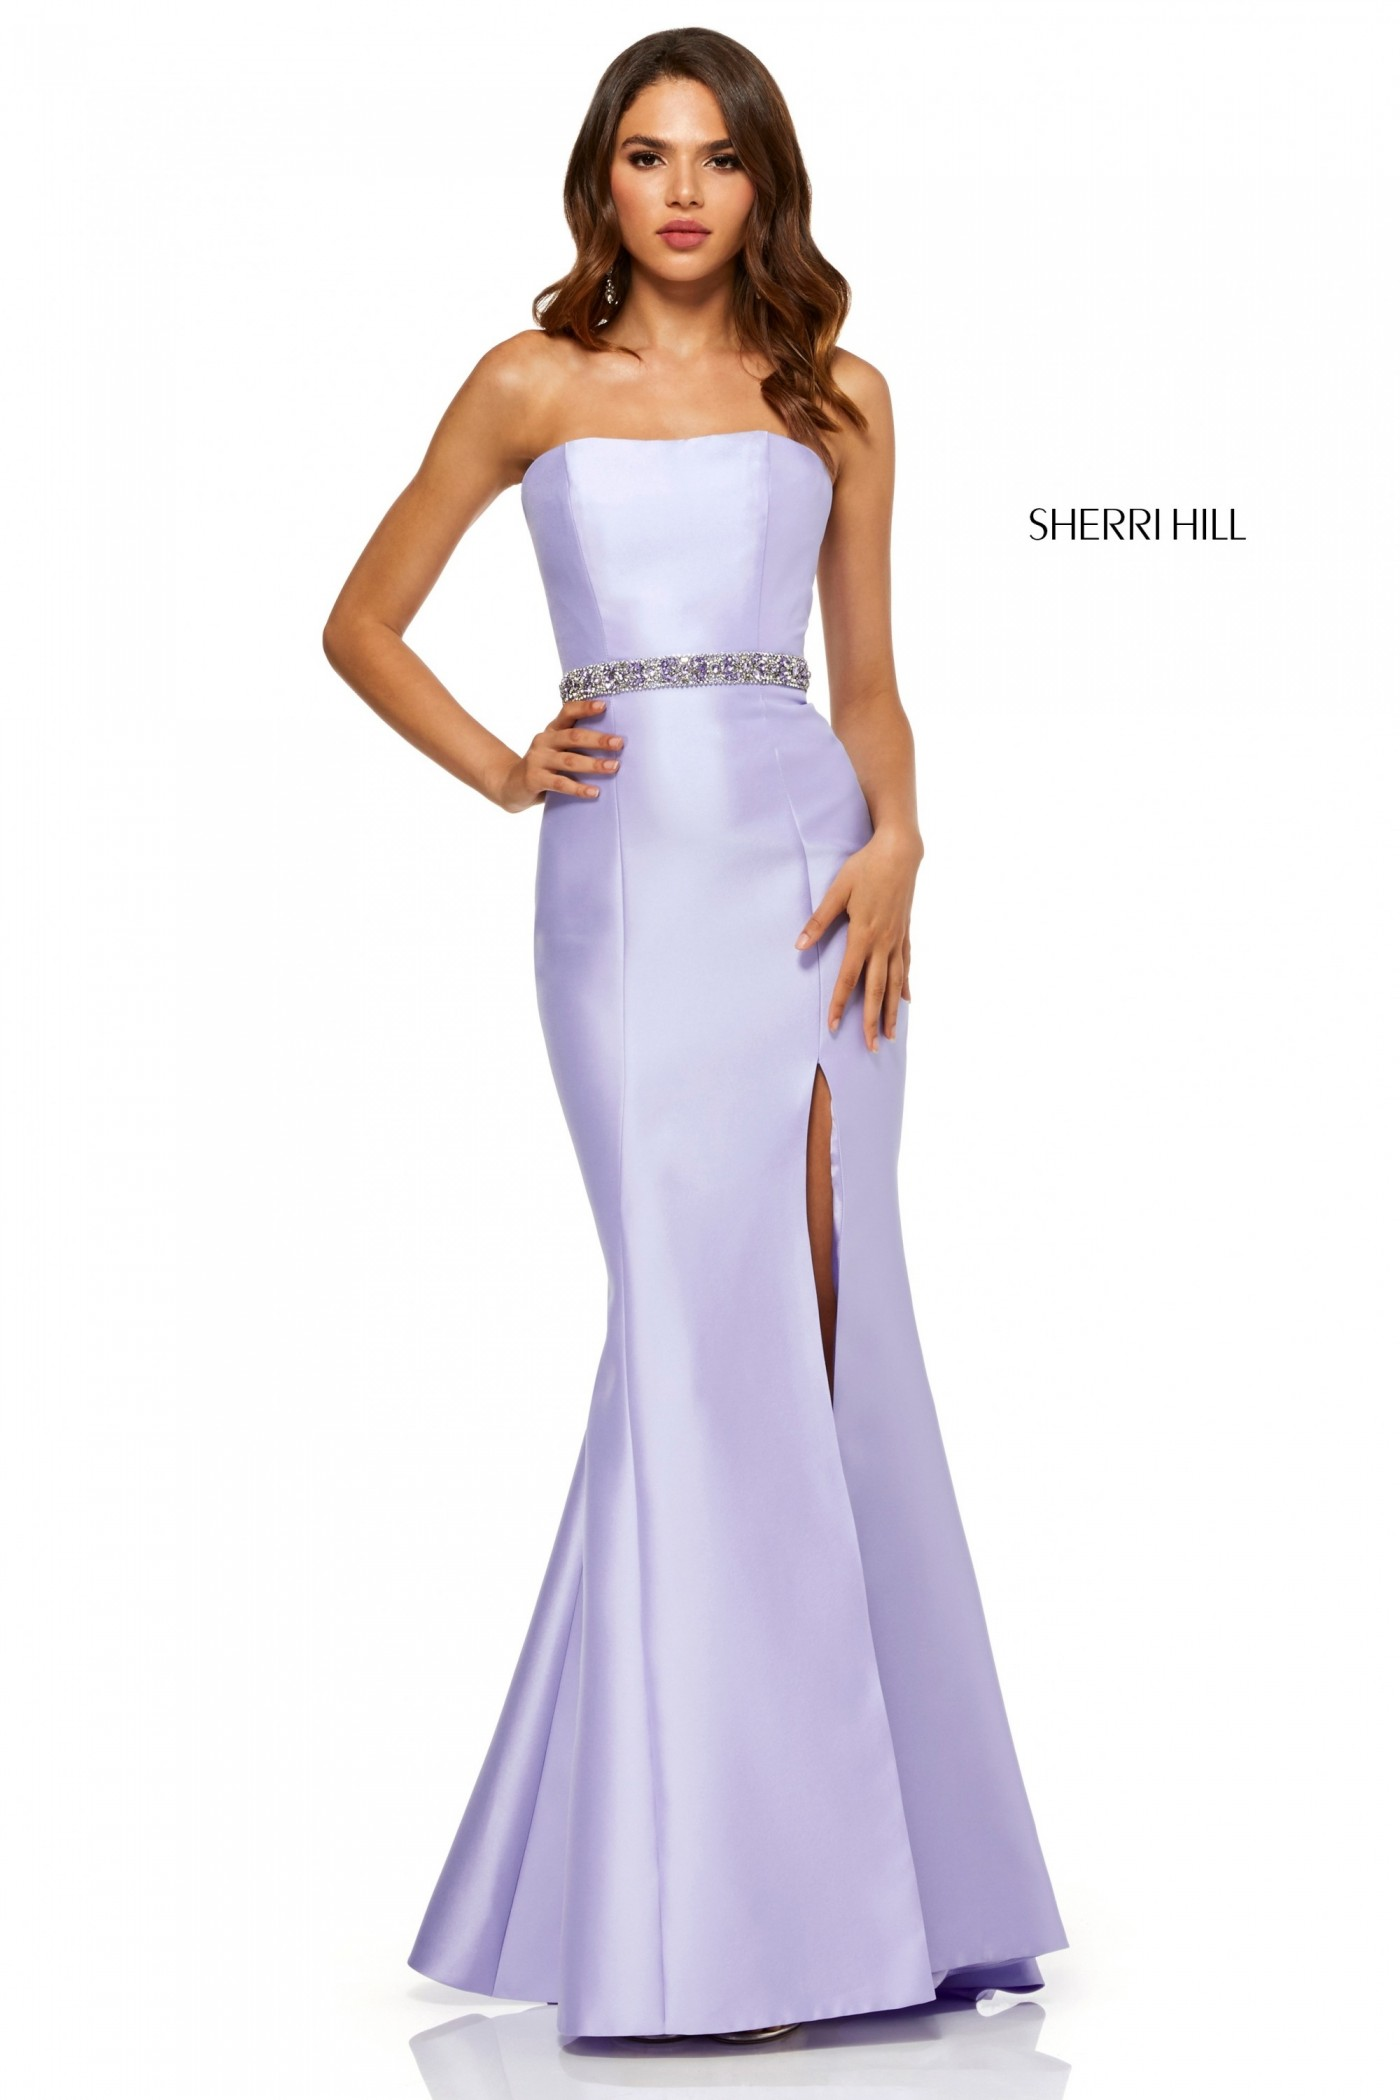 Sherri Hill 52541 Strapless Evening Gown